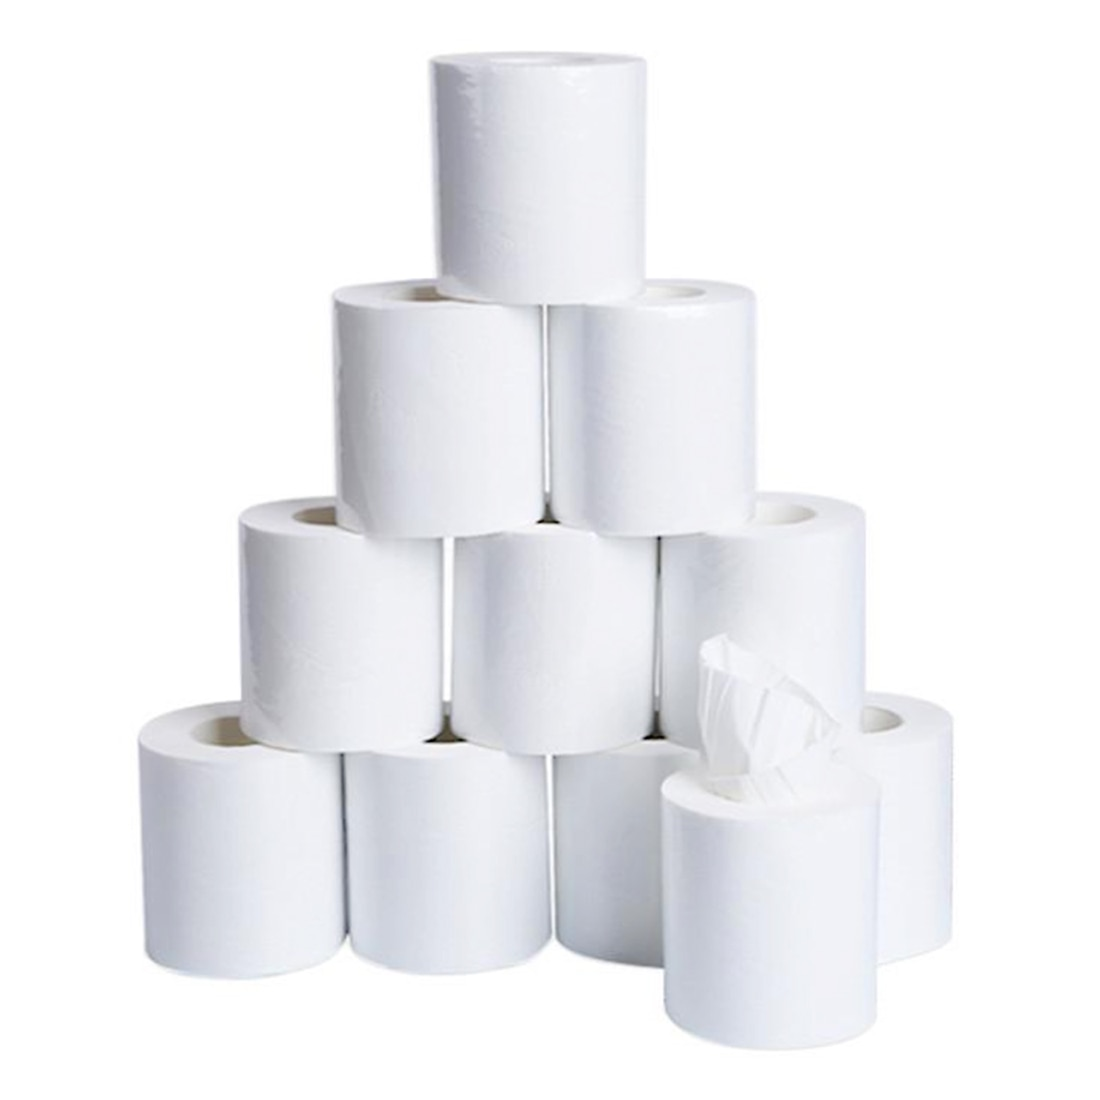 10pcs/lot White Thickened Toilet Tissue Soft Household Toilet Paper Hollow Replacement Roll Paper Individual package